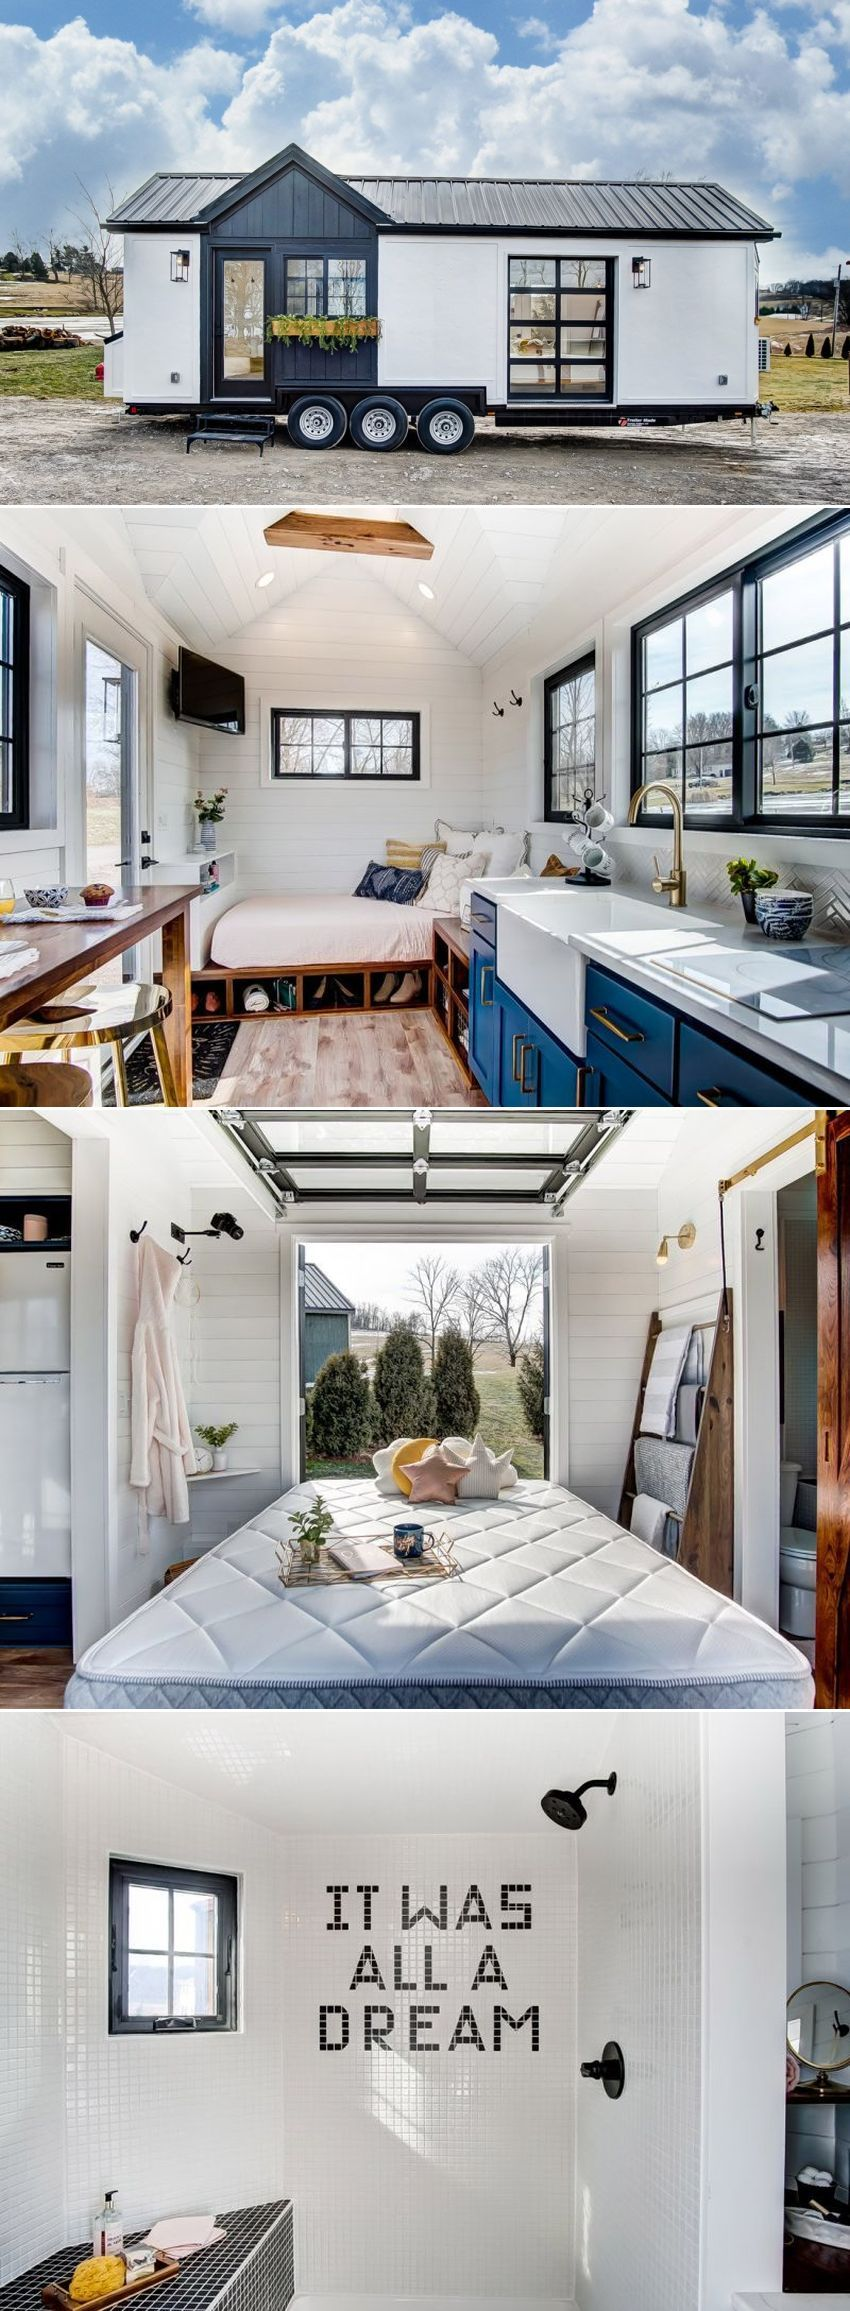 Allswell Hires Modern Tiny Living to Build This 100K Tiny House on Wheels